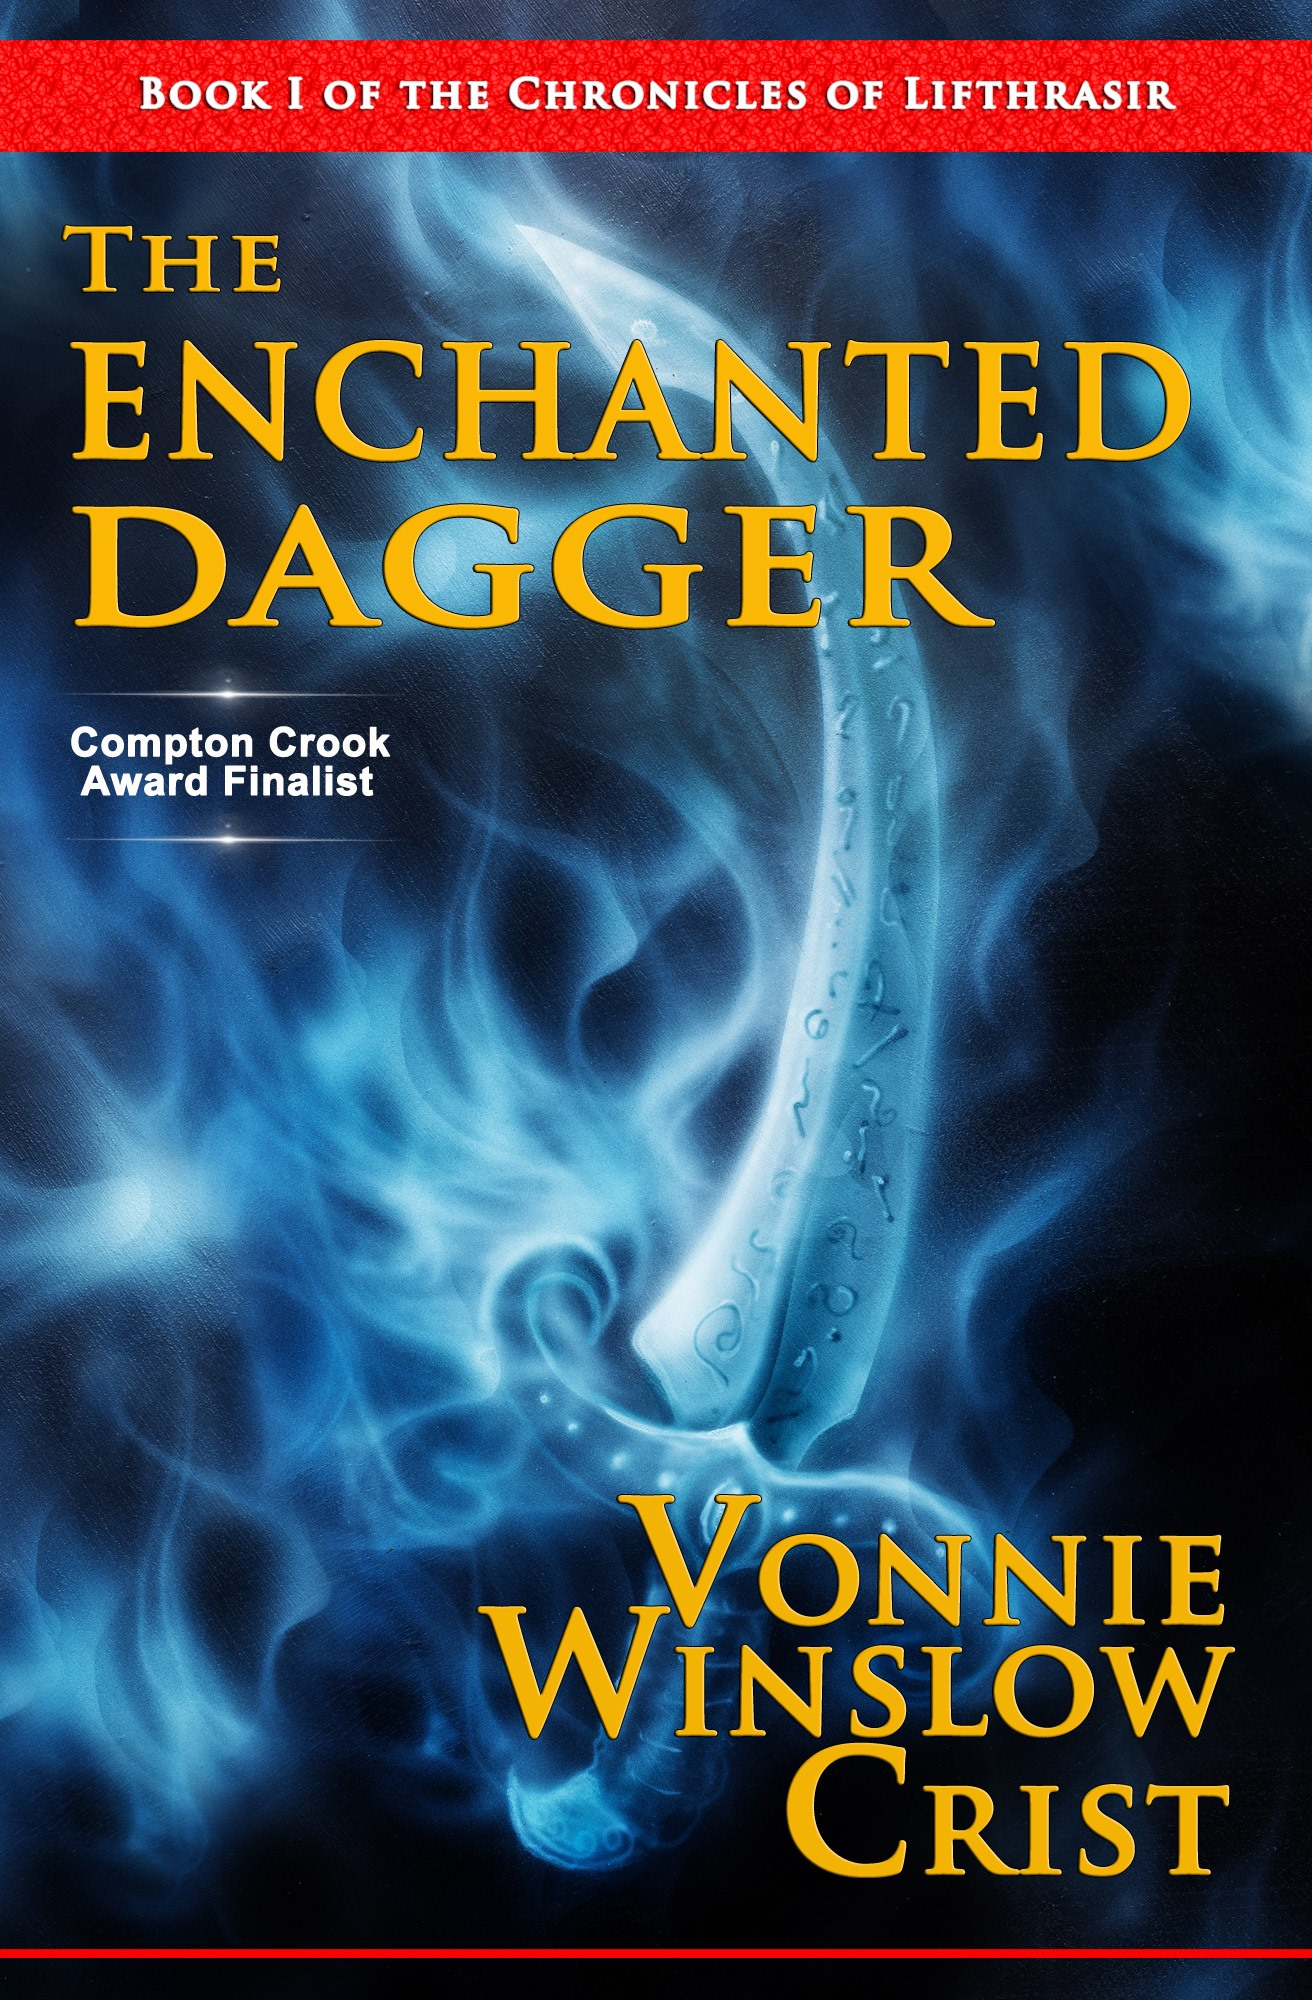 The Enchanted Dagger by Vonnie Winslow Crist